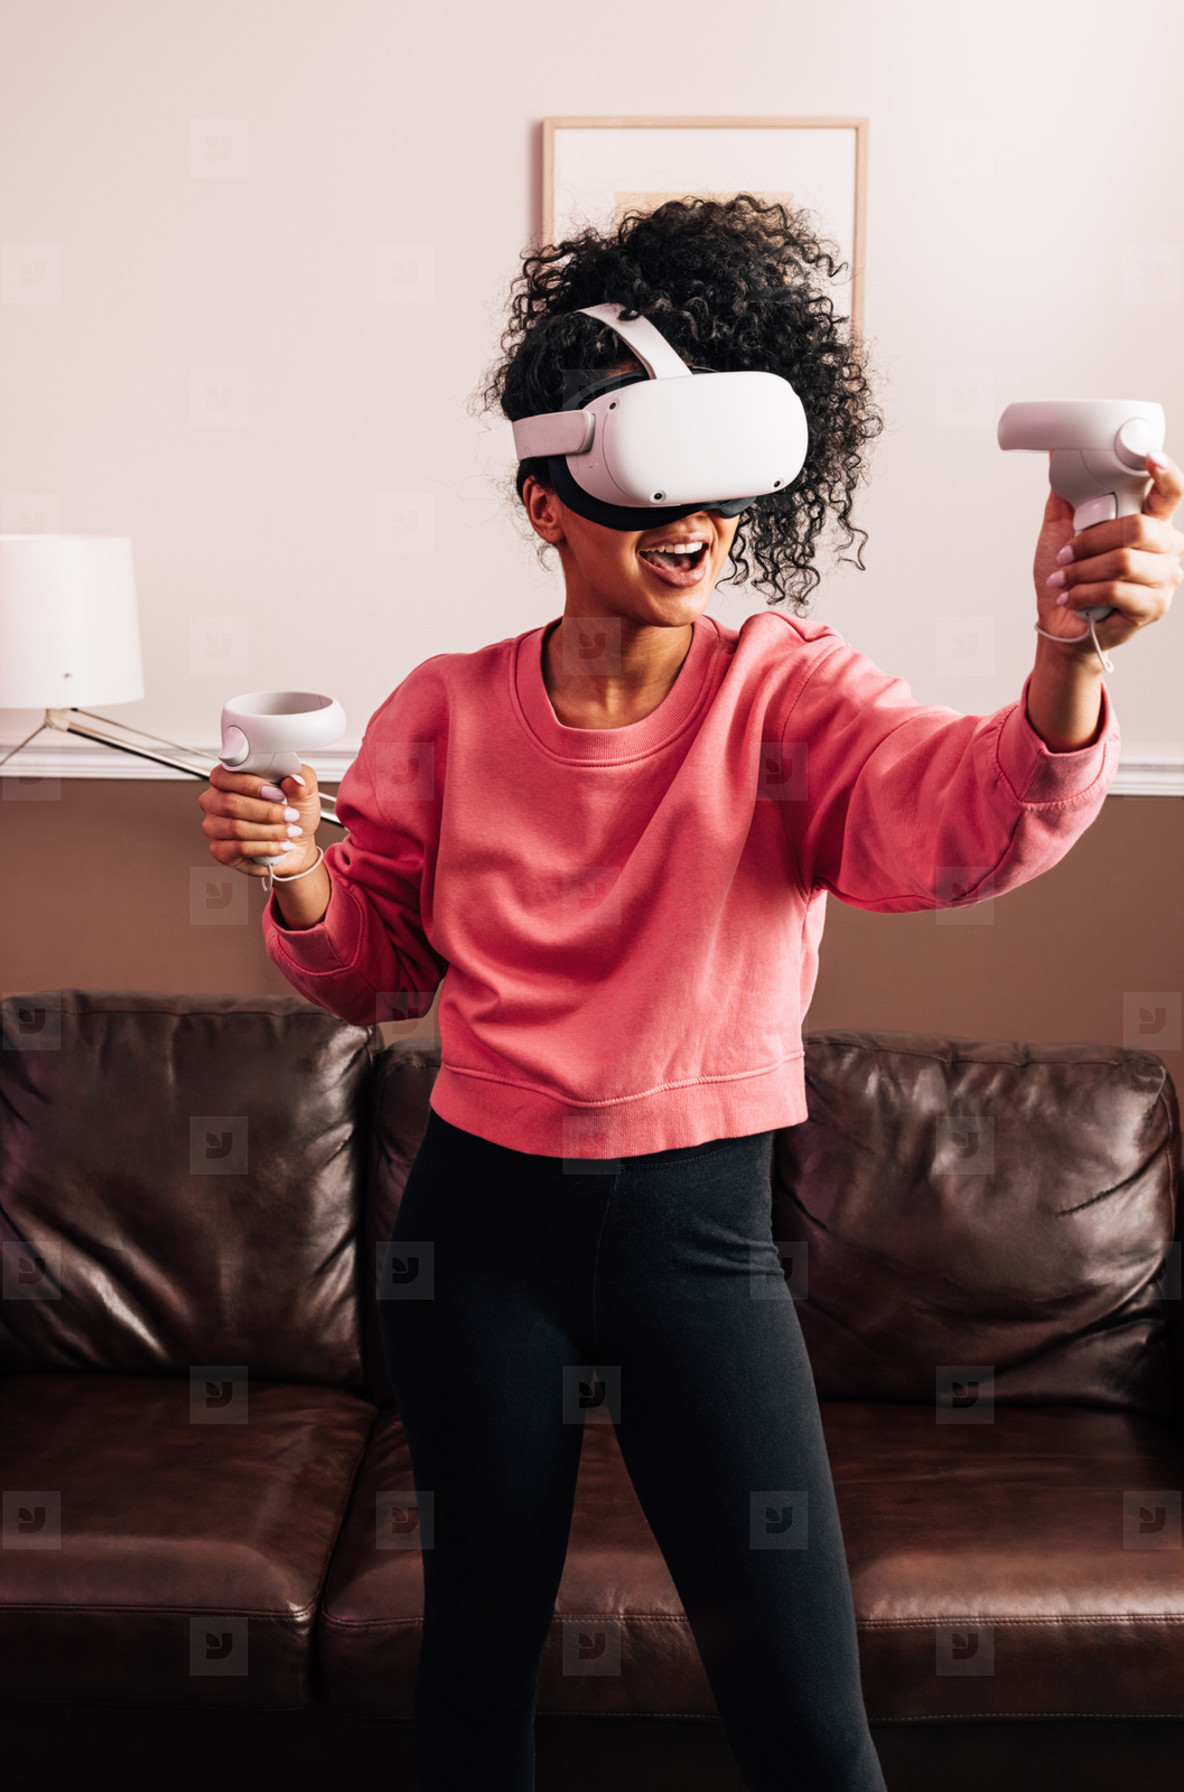 Woman with VR goggles and controllers in living room